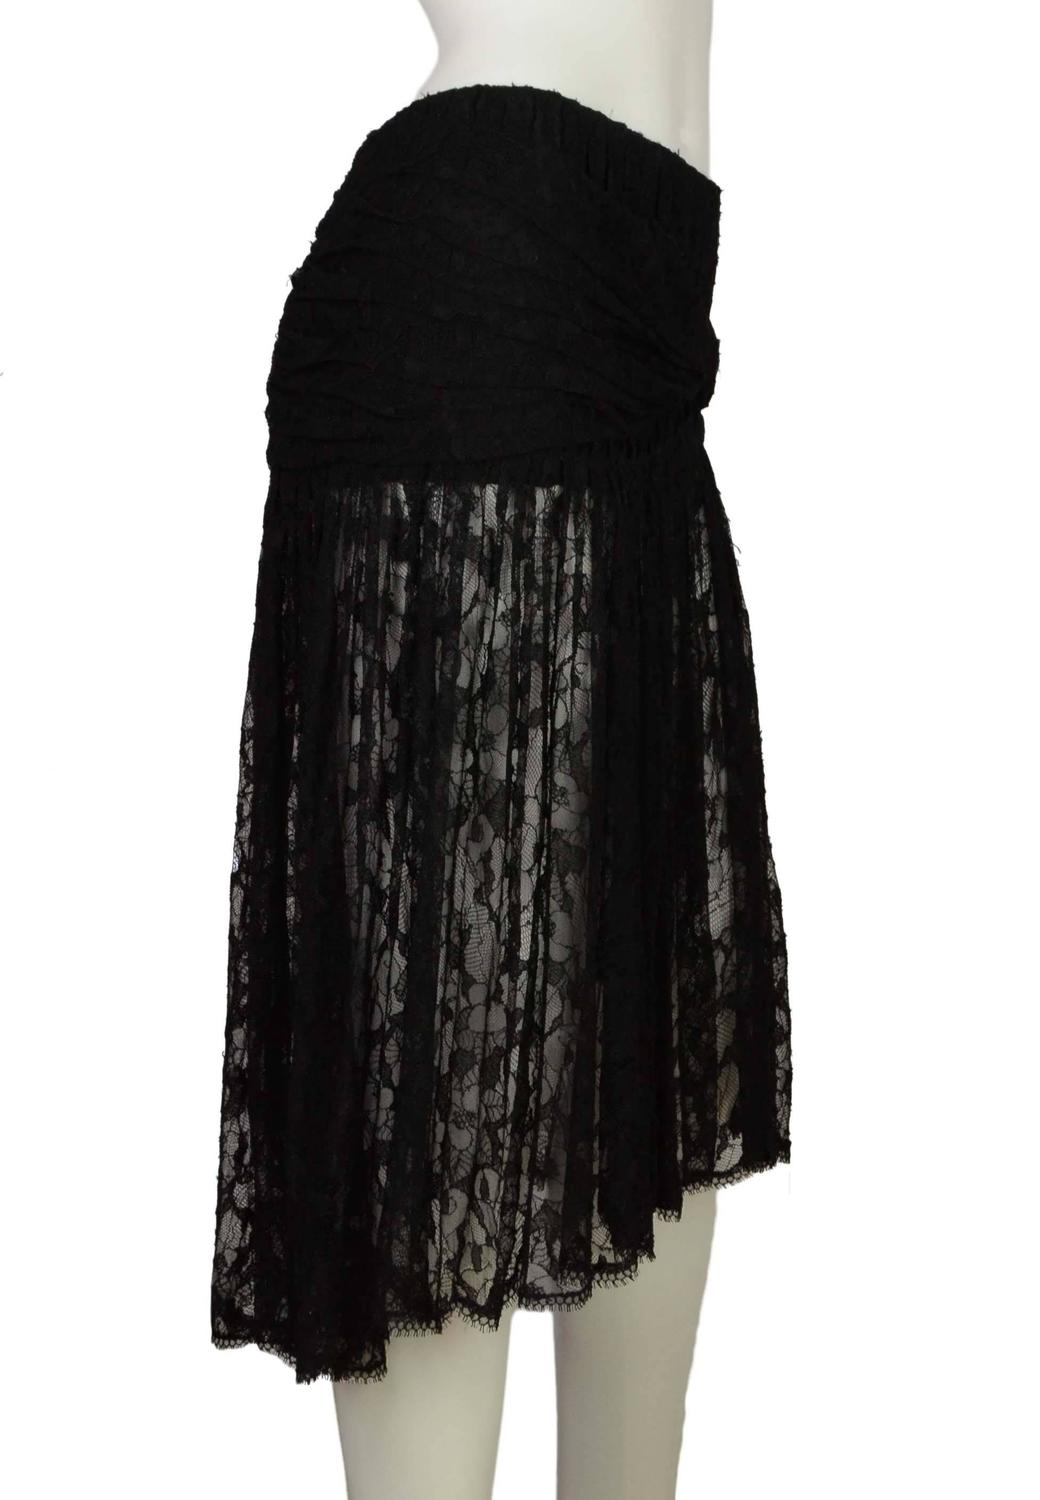 chanel black lace pleated high low skirt sz 38 at 1stdibs